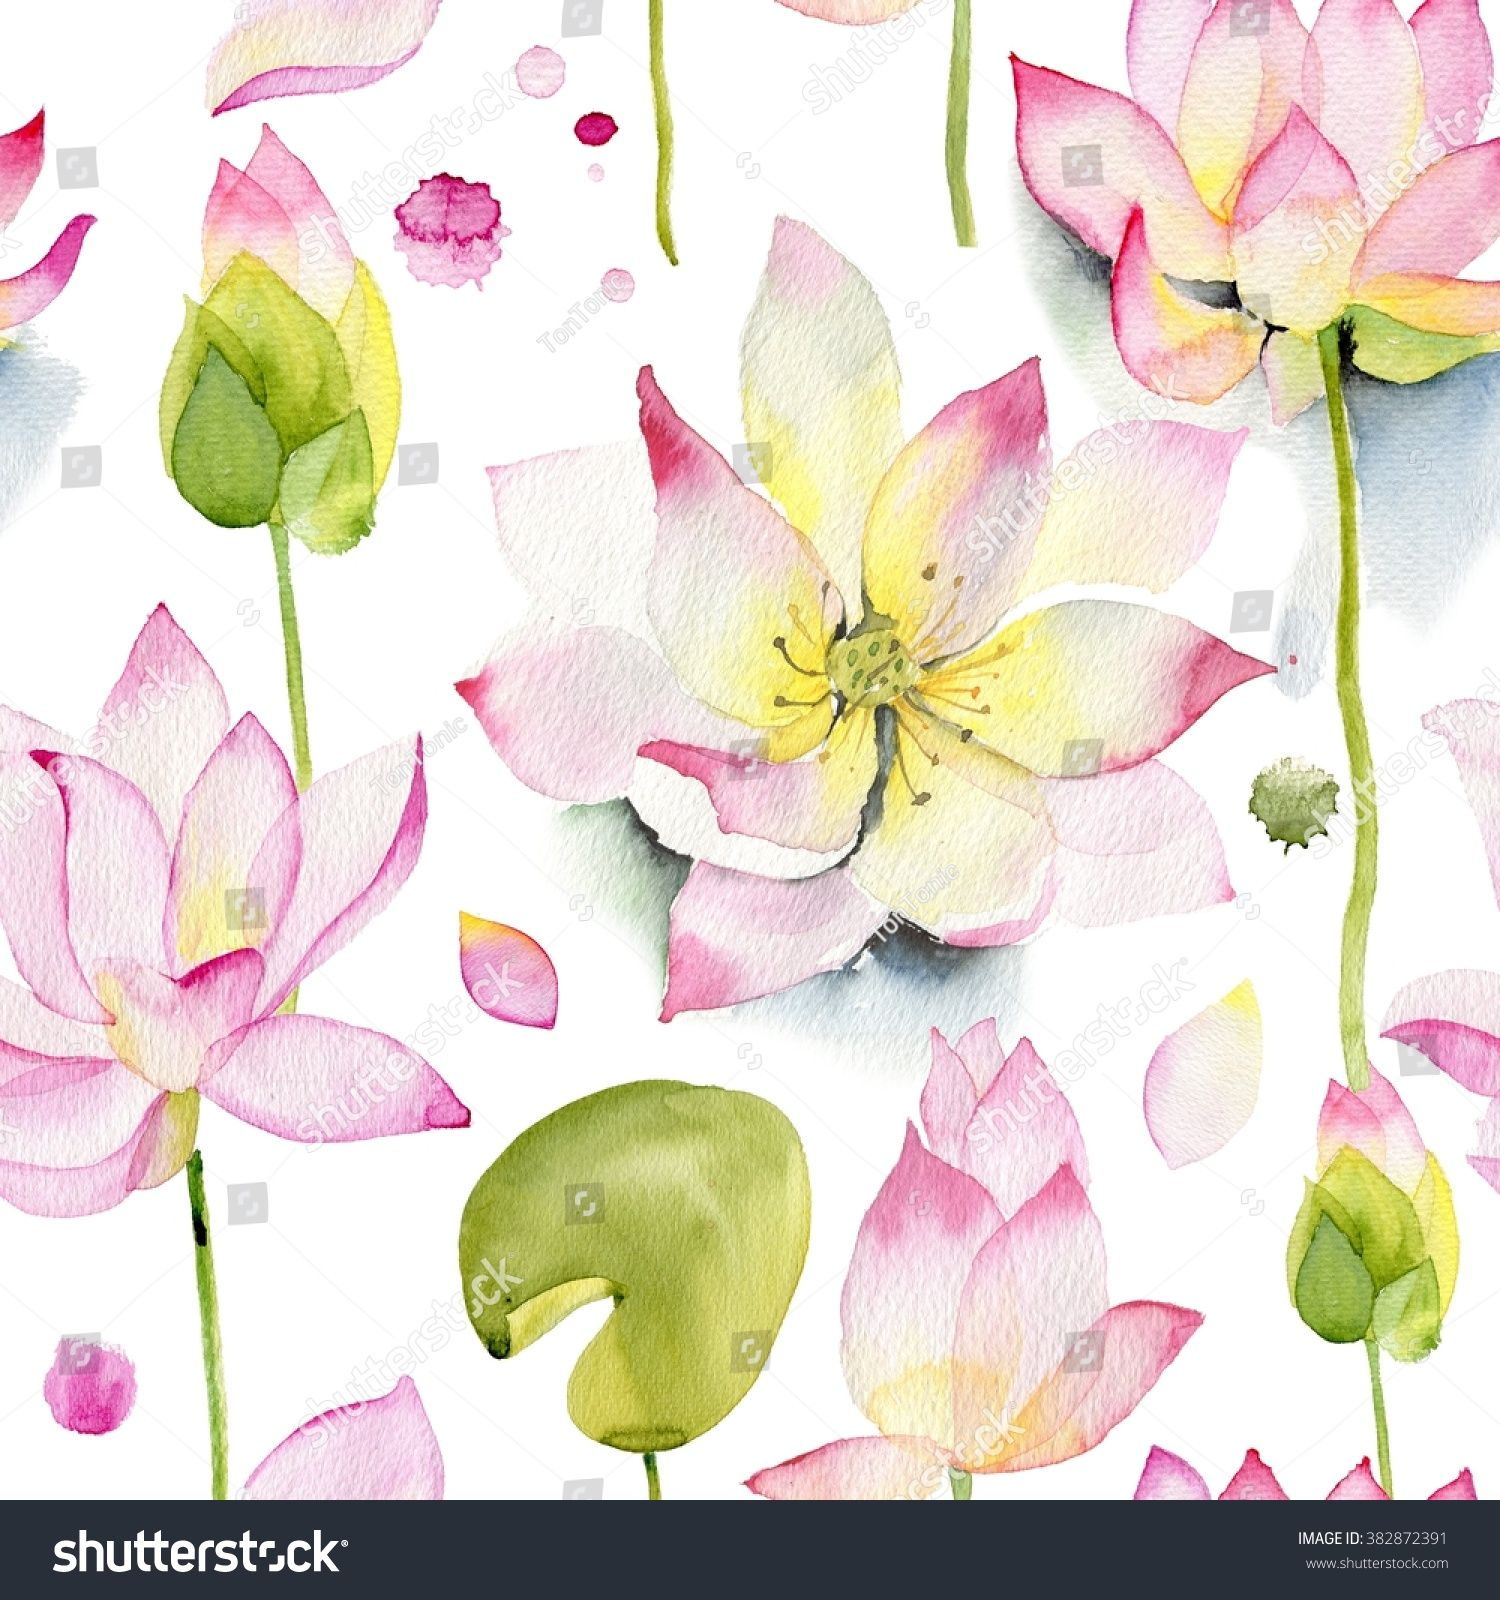 Lilies And Lotuses On A White Background Pink Lotus Flowers